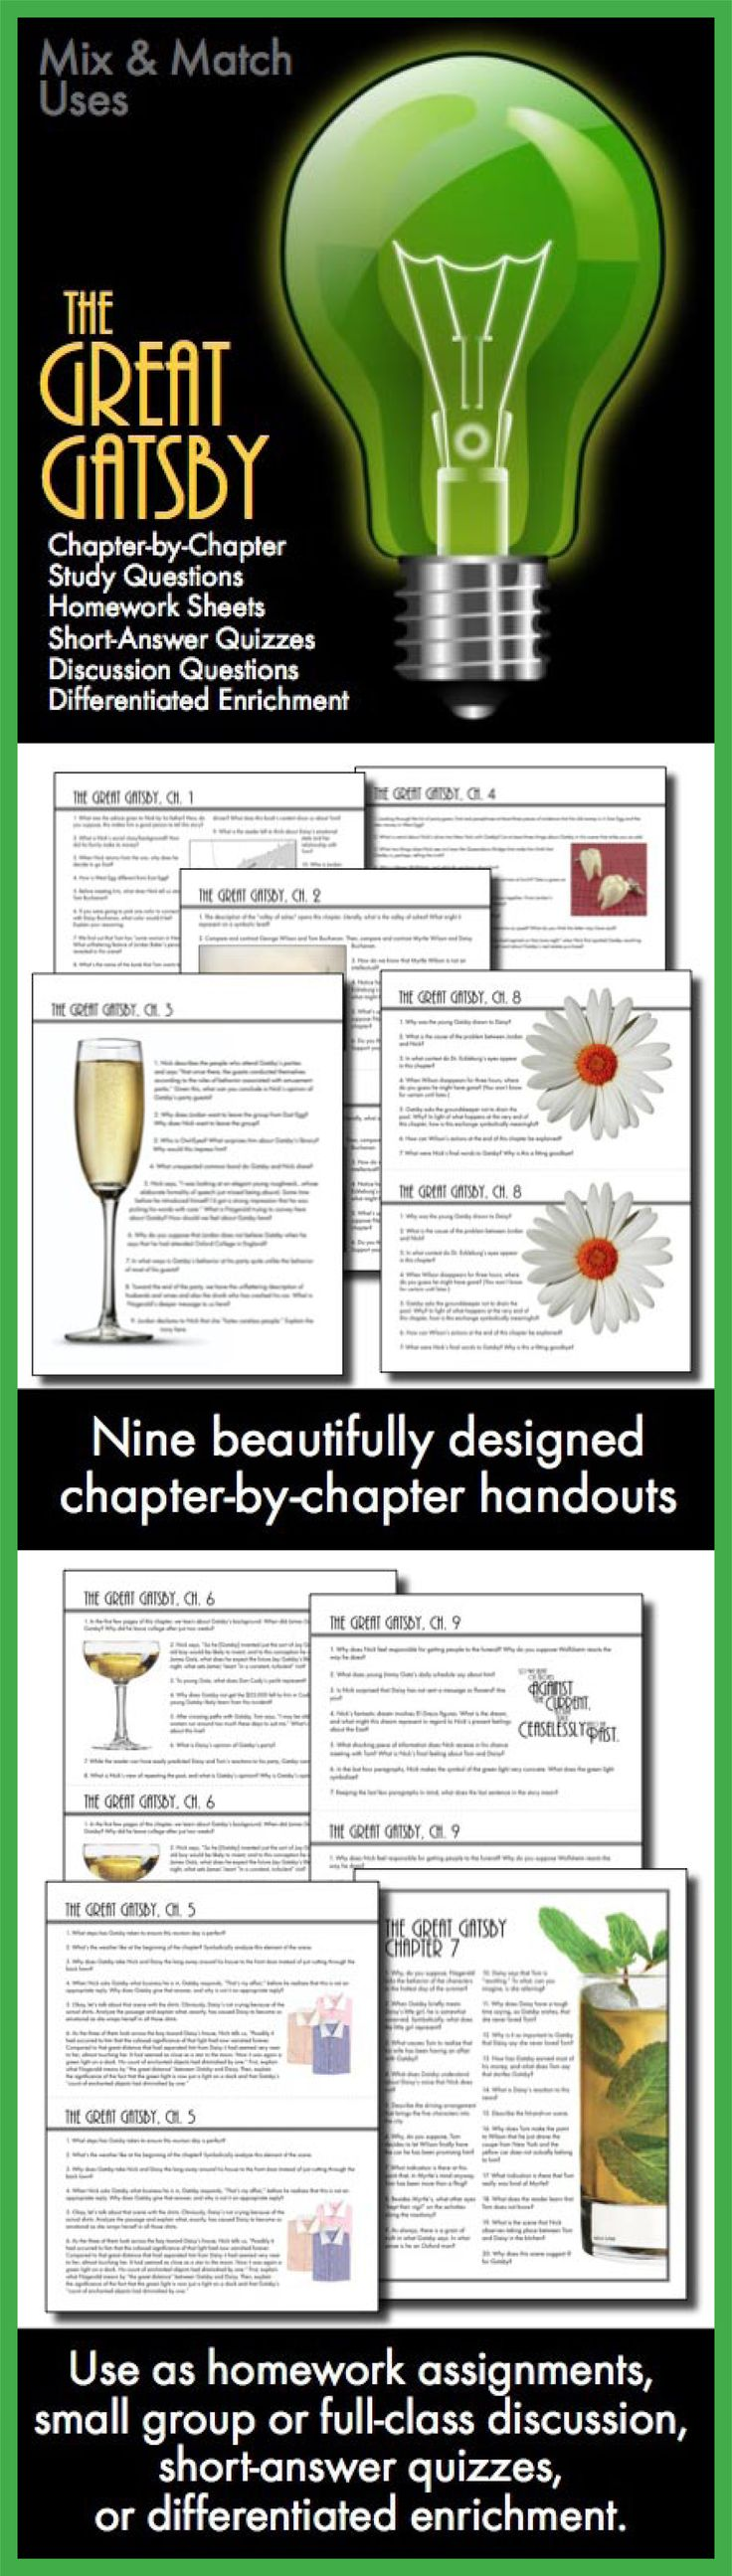 Use this visually stunning package of chapter-by-chapter questions covering F. Scott Fitzgerald's masterpiece, The Great Gatsby, to pull your students into the text and inspire them to think deeply about Fitzgerald's characters and themes.